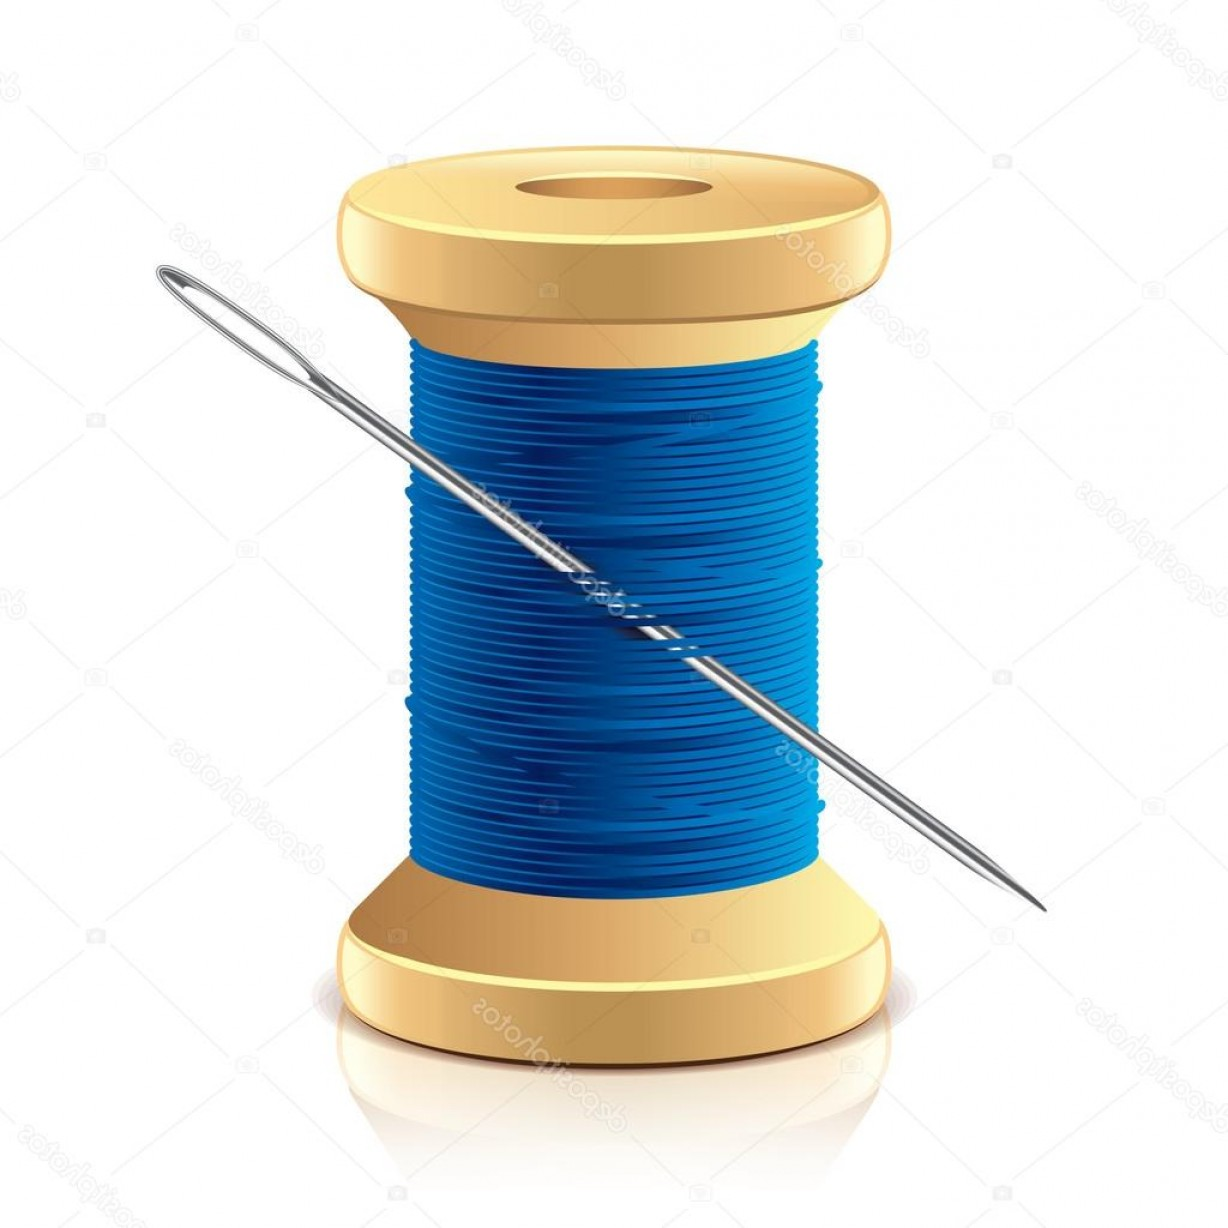 1228x1228 Stock Illustration Needle And Thread Spool Vector Arenawp